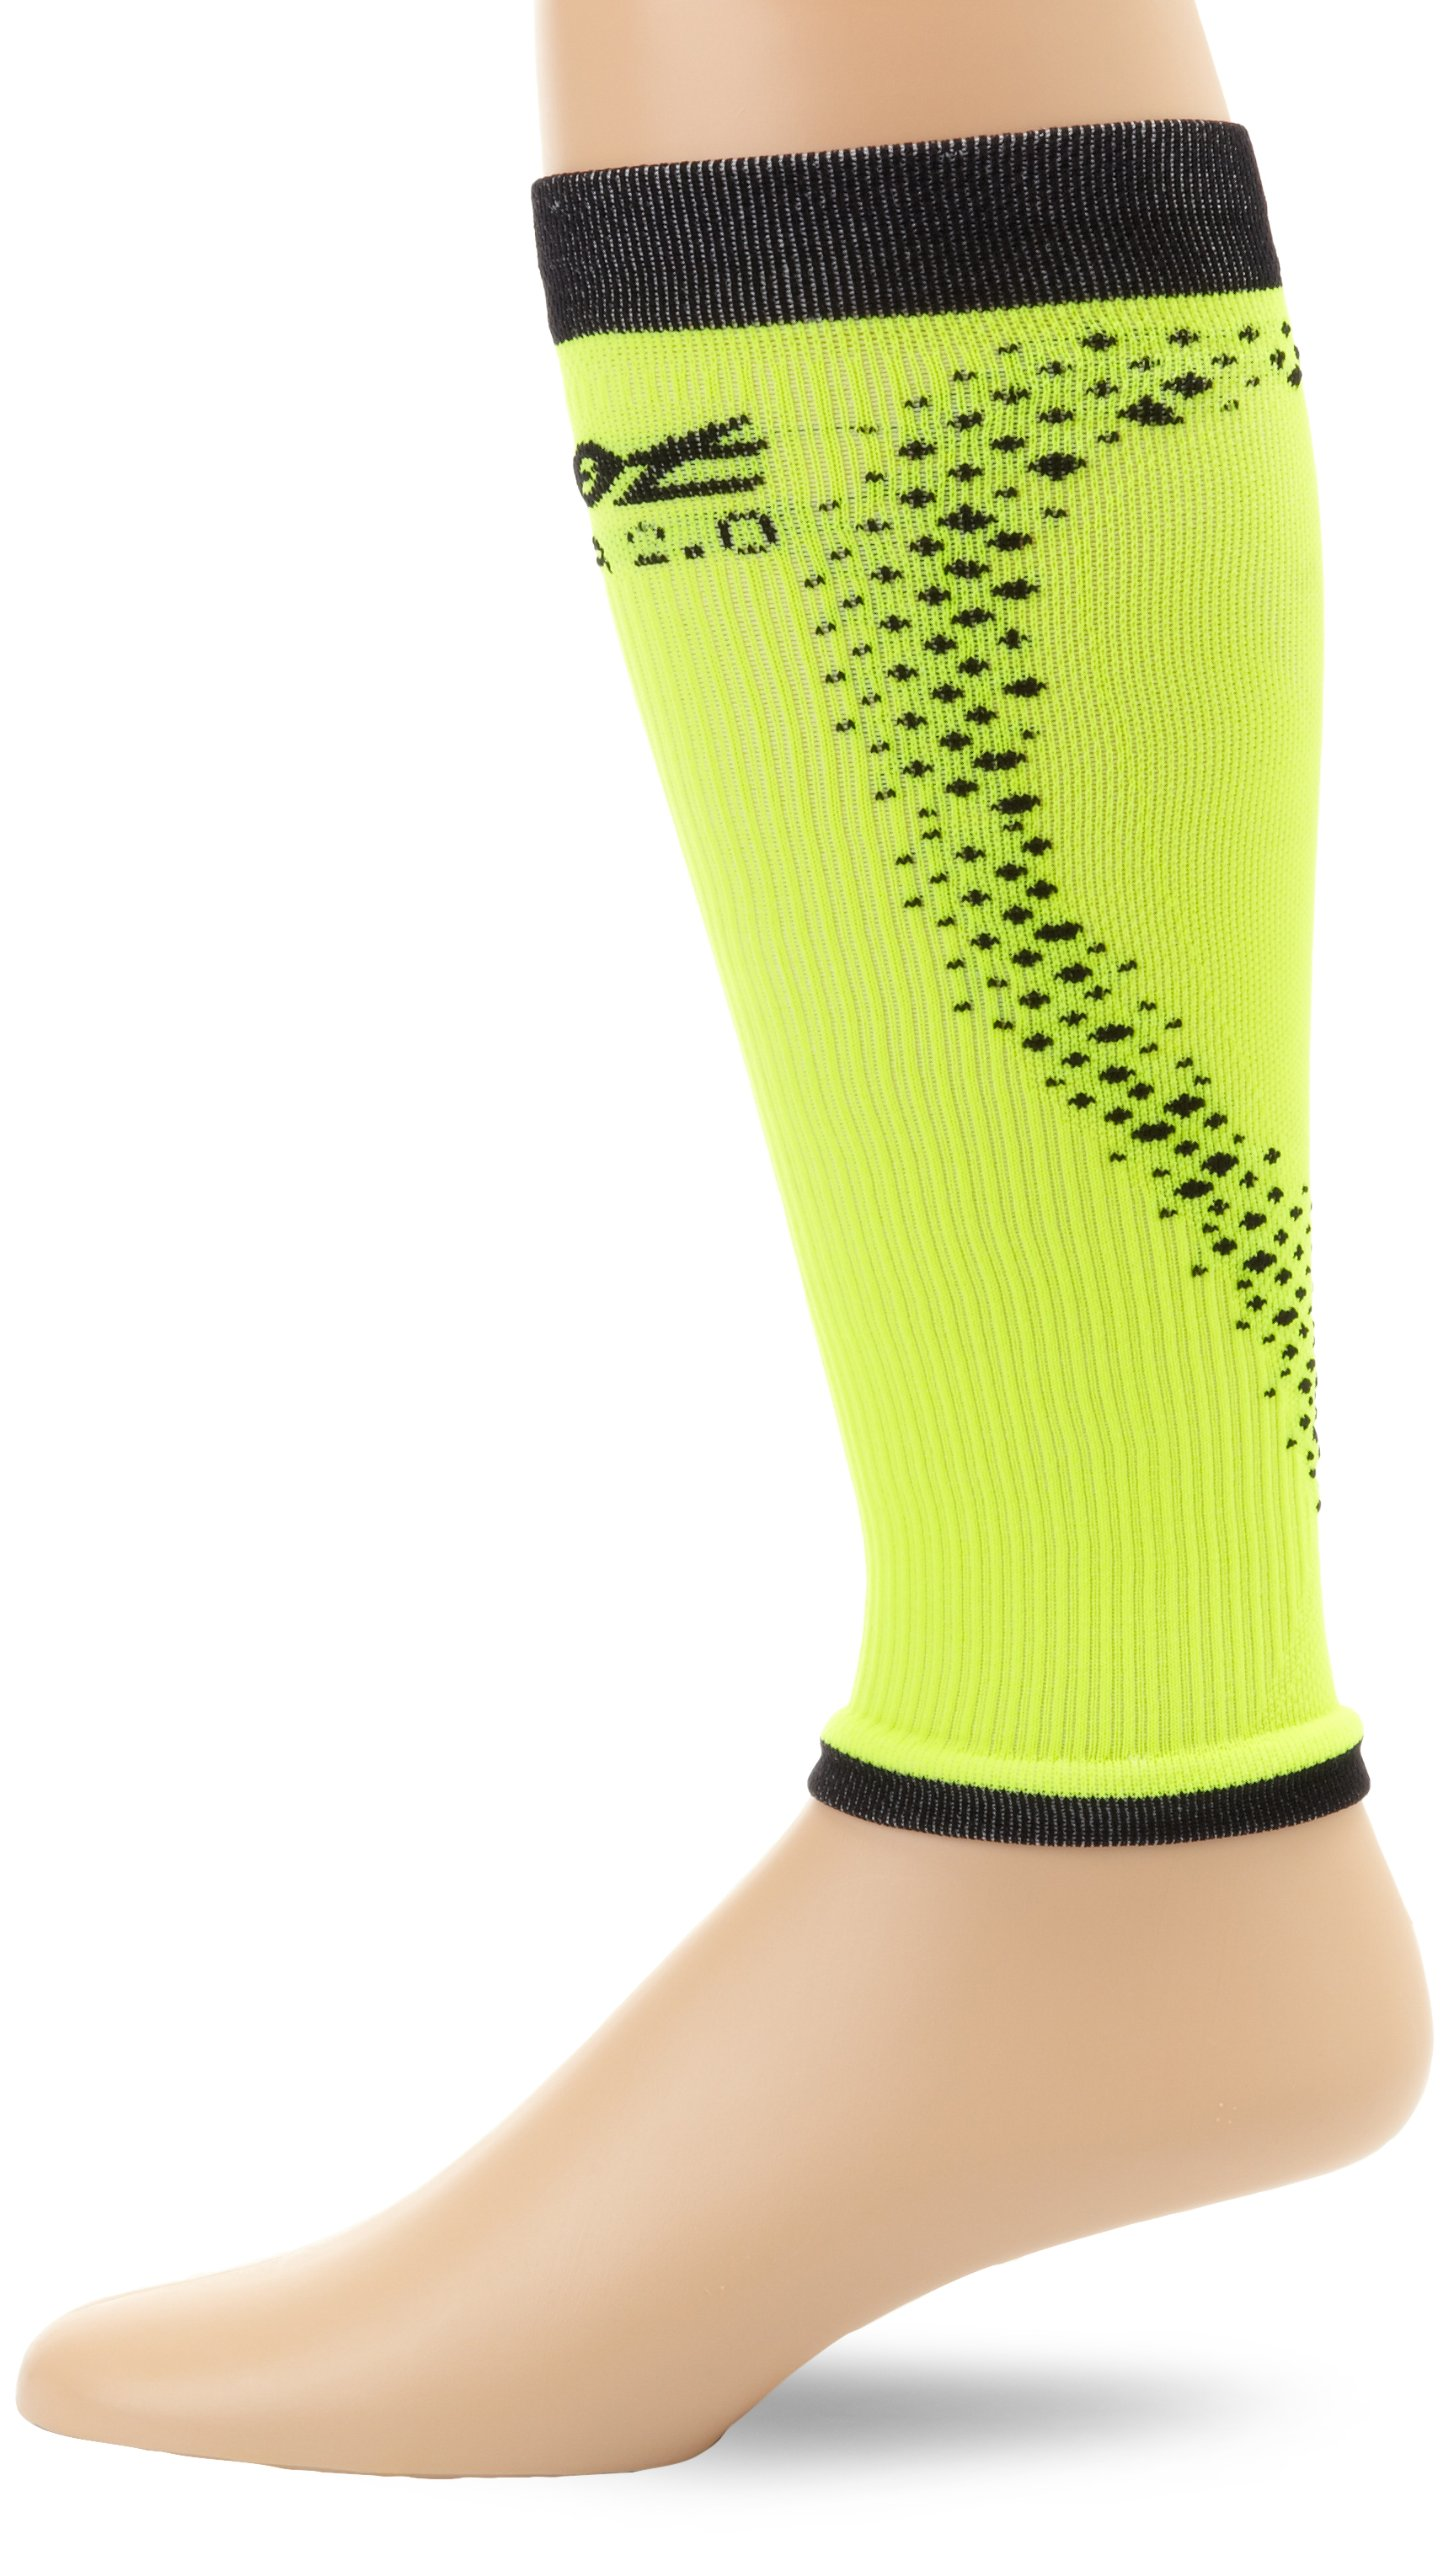 Zoot Sports Men's Ultra 2.0 CRX Calf Sleeve, Black/Safety Yellow, 3